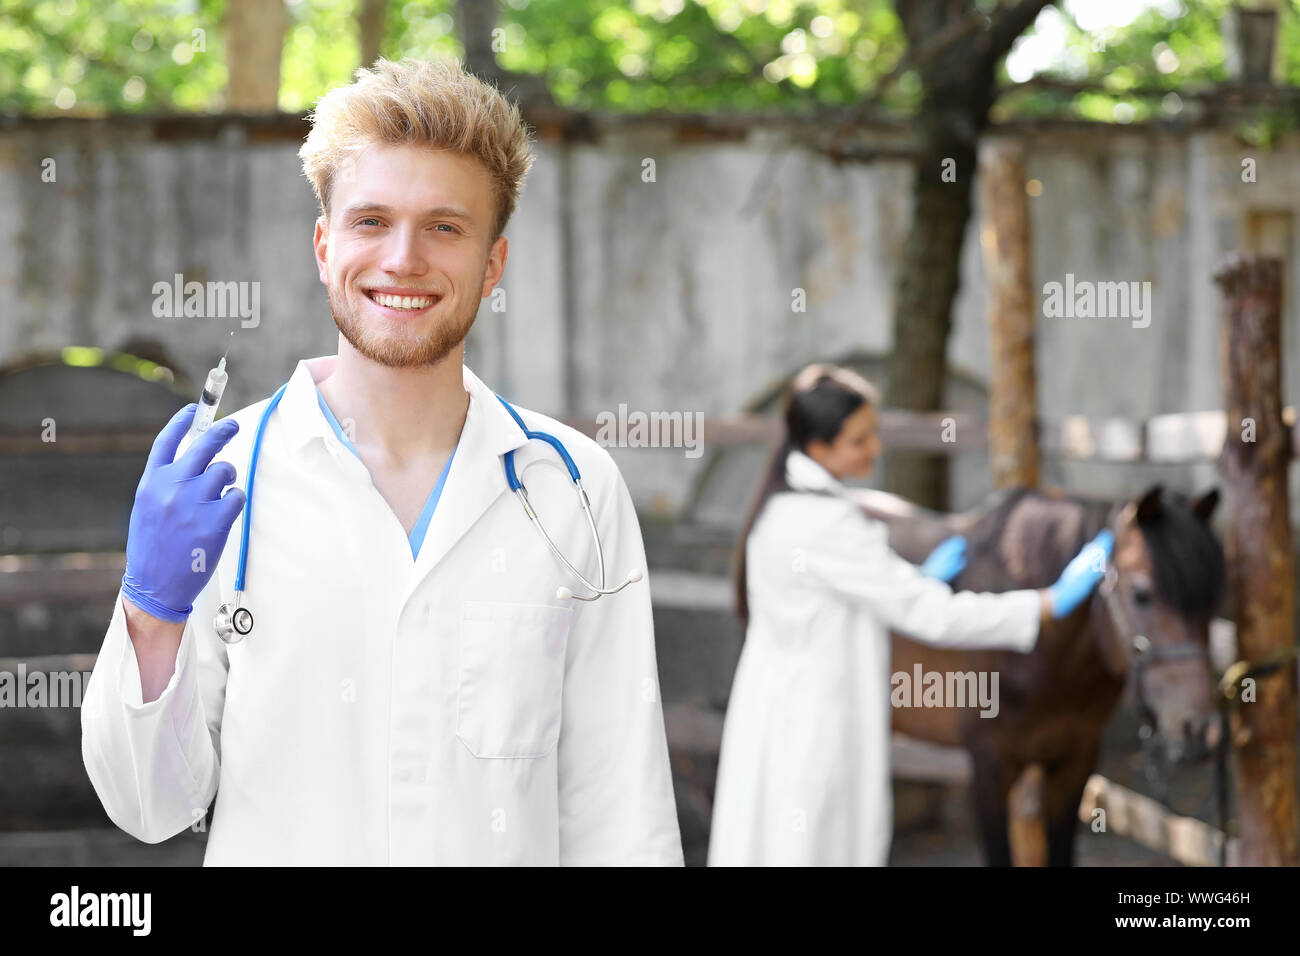 Veterinarian going to vaccinate horse on farm Stock Photo